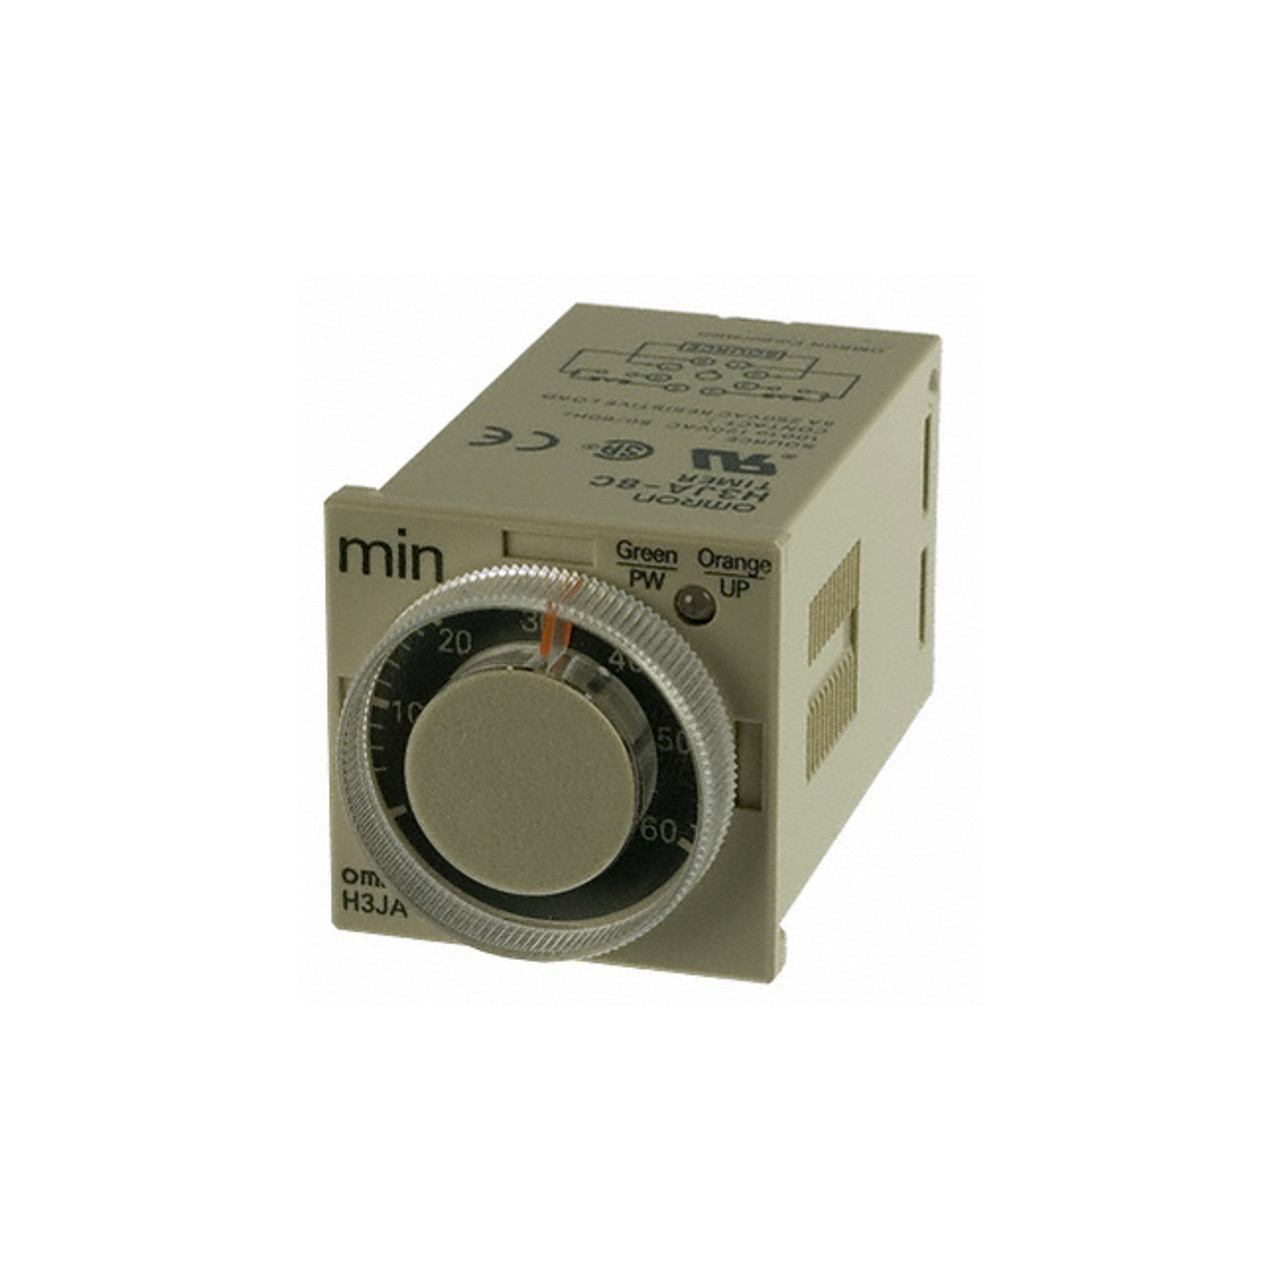 Omron Solid State Timer - Tremtech Electrical Systems